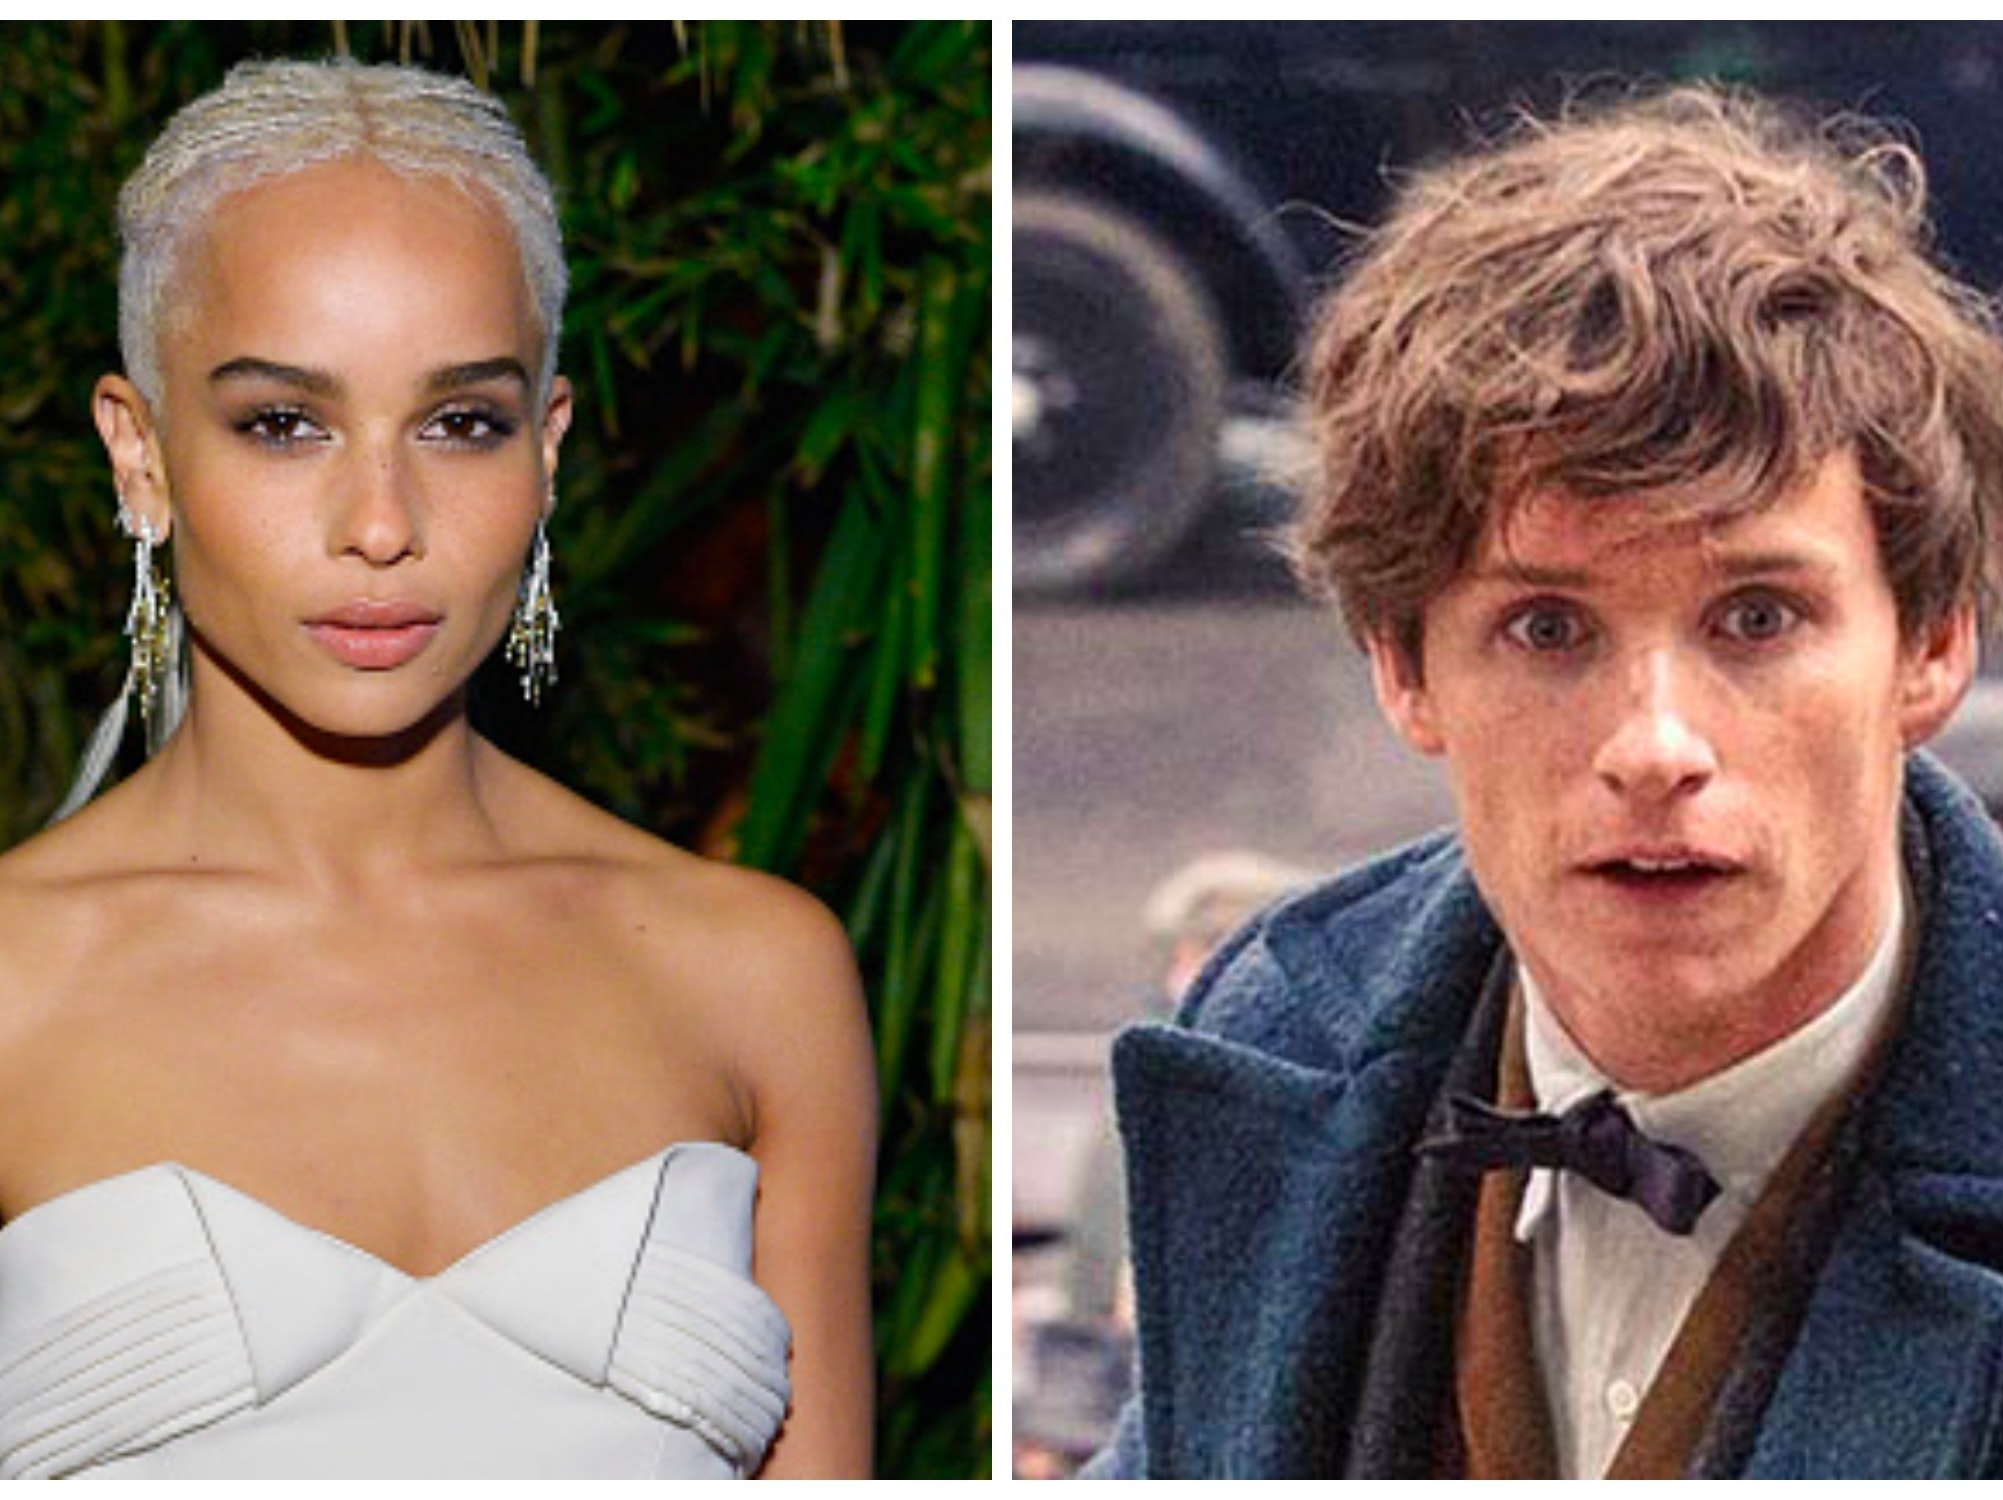 Eddie Redmayne as Newt Scamander in 'Fantastic Beasts and Where to Find Them'